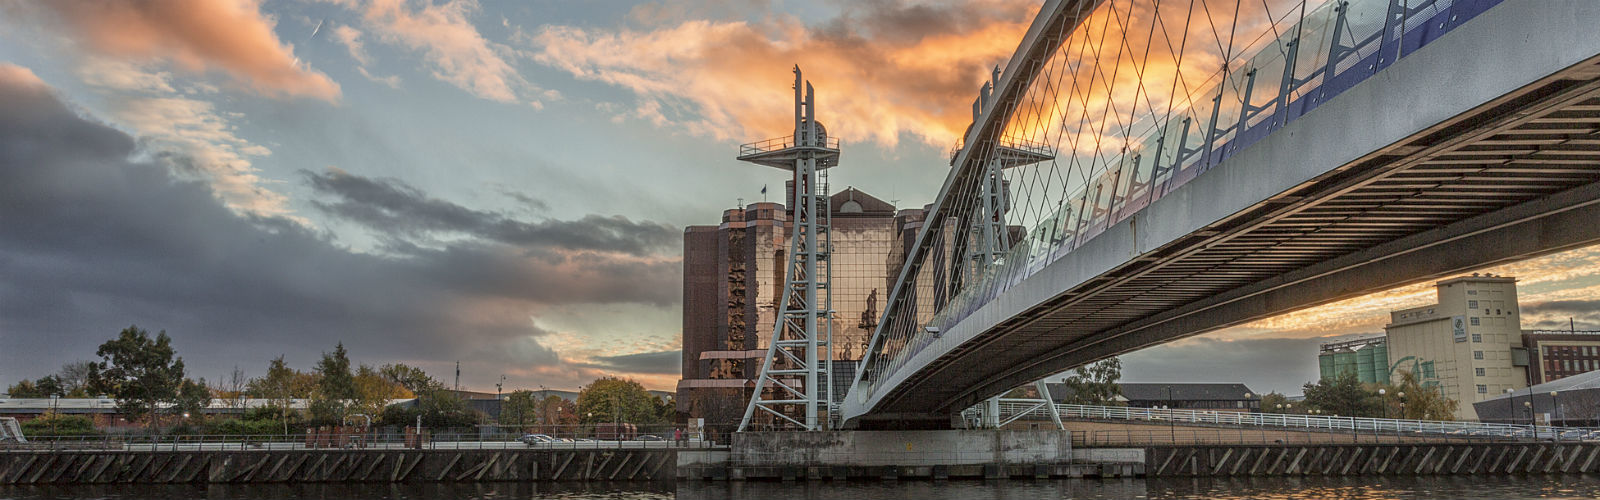 Image: Sunset over Salford Quays